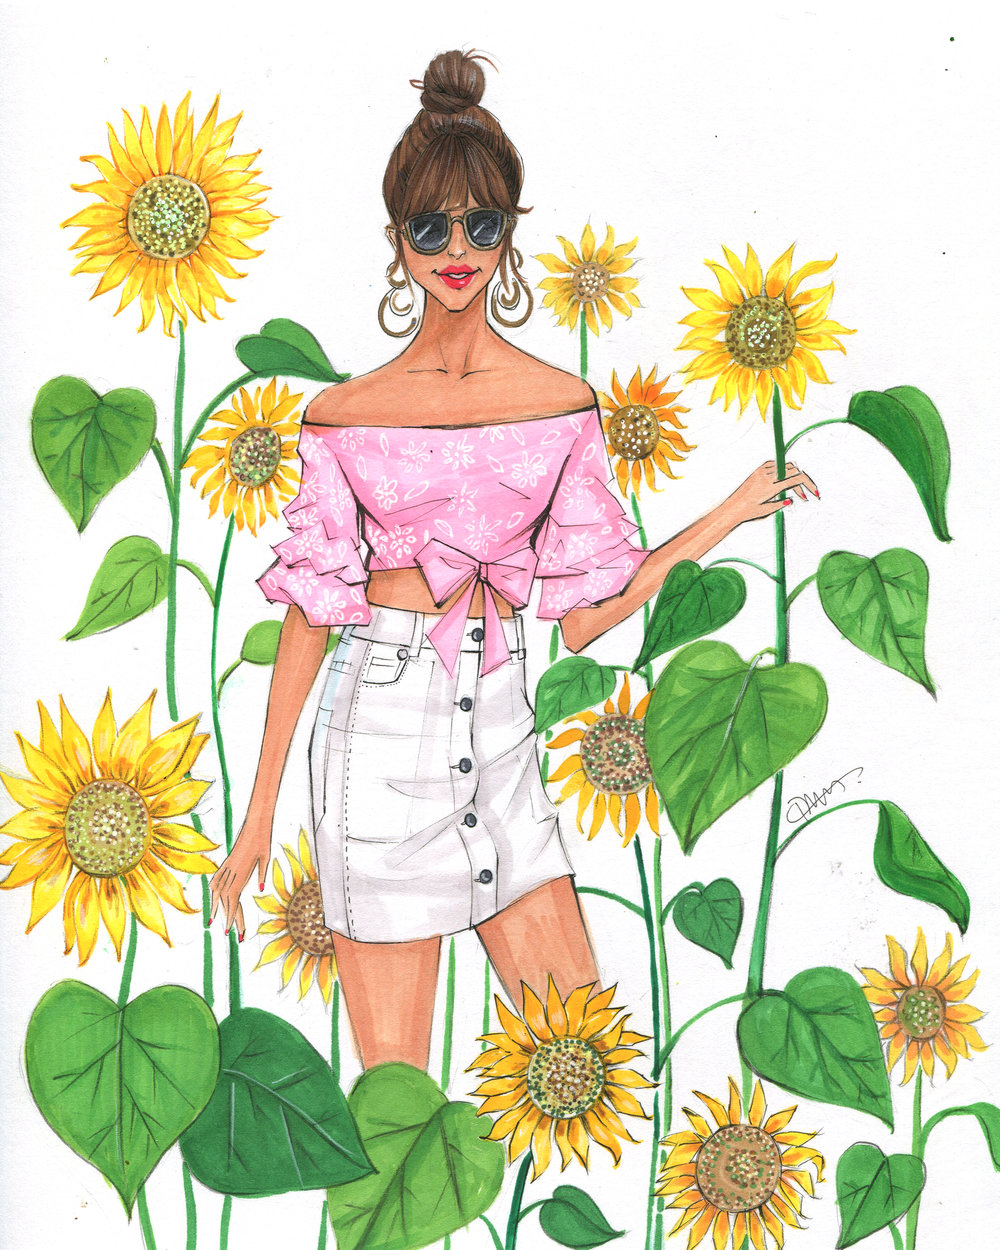 Fashion Illustration named Sunflower field